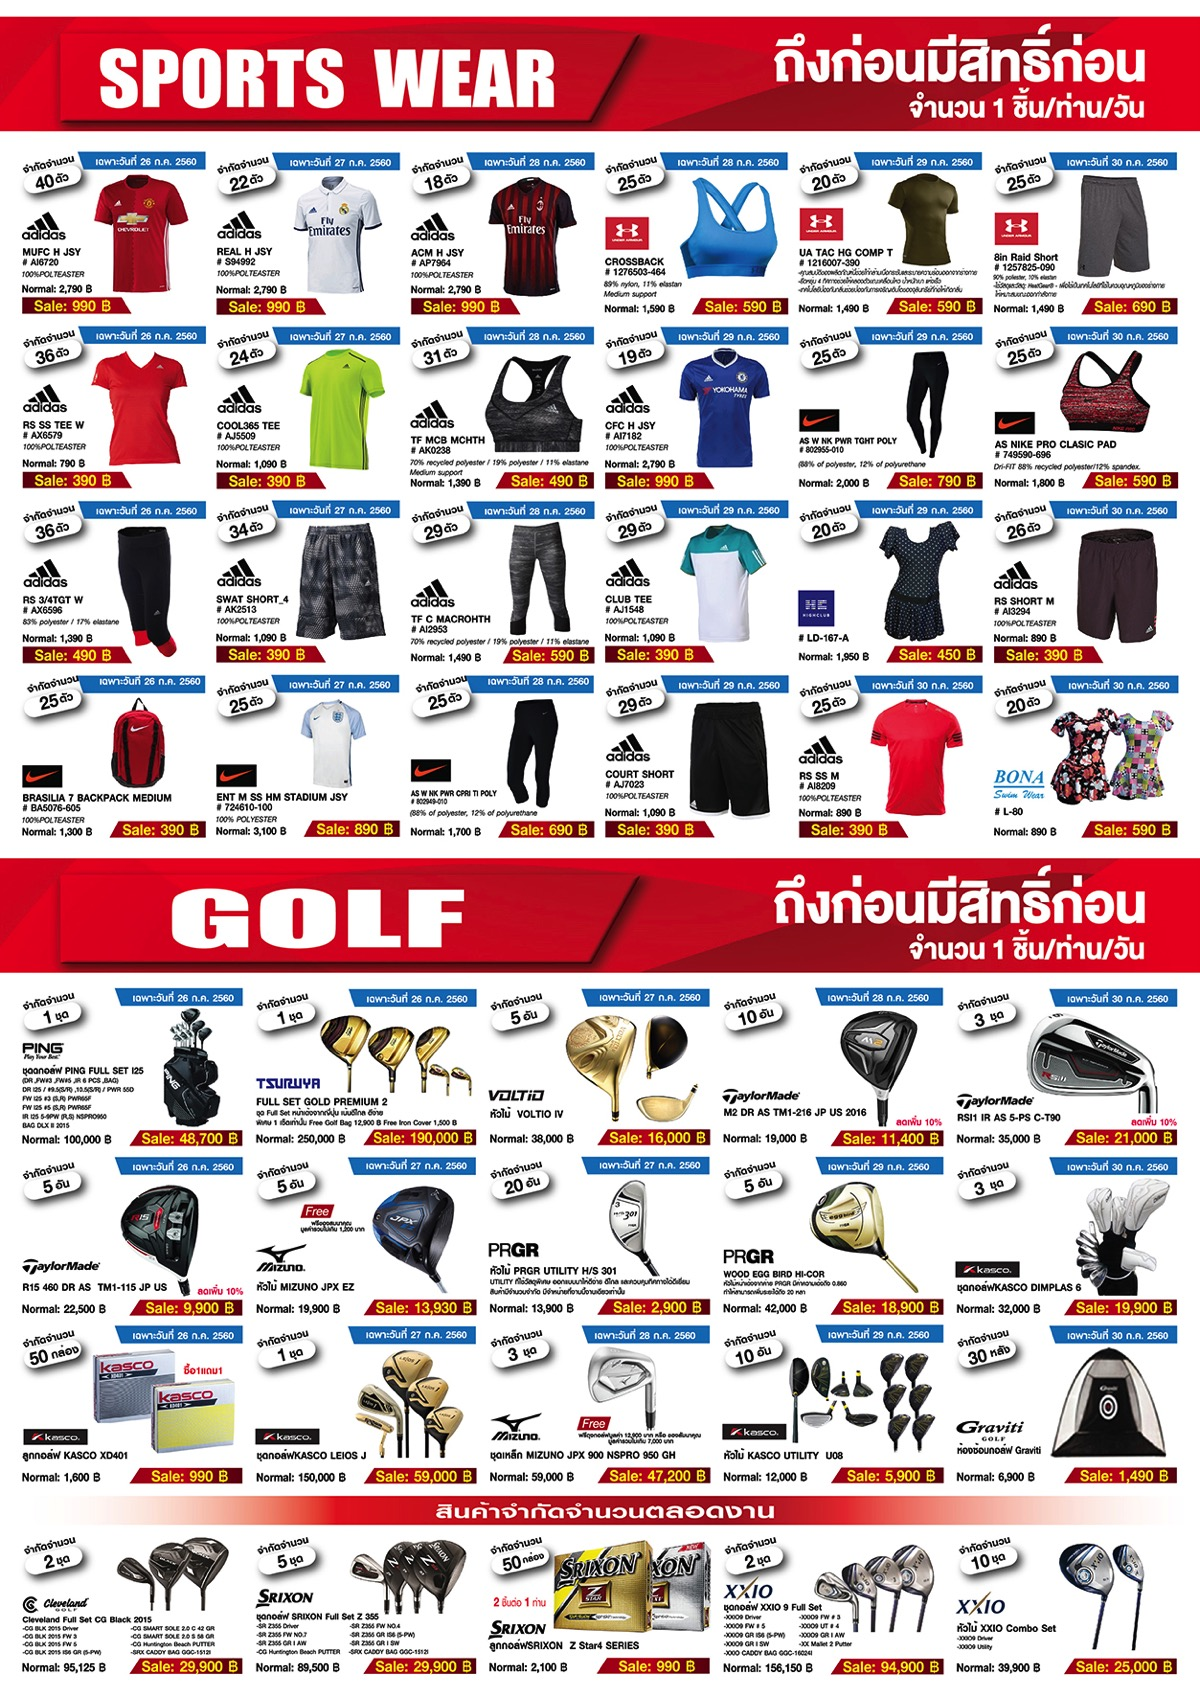 Promotion sports world expo 2017 sale up to 70 off jul 2017 P02